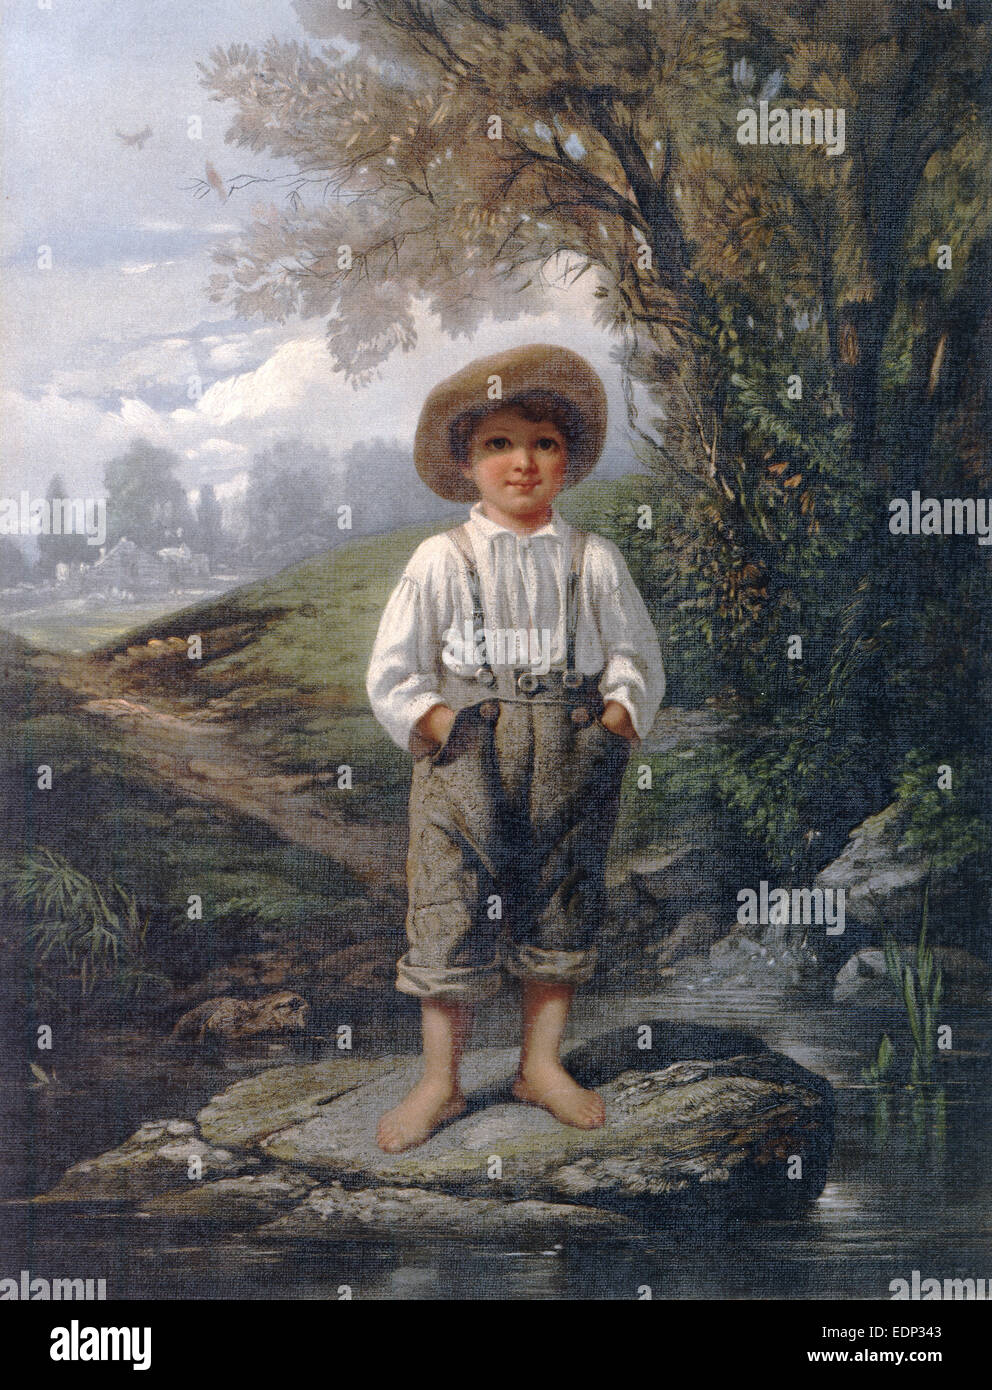 Whittier's barefooted boy; L. Prang & Co.; Johnson, Eastman, 1824-1906 , artist, Whittier, John Greenleaf, - Stock Image